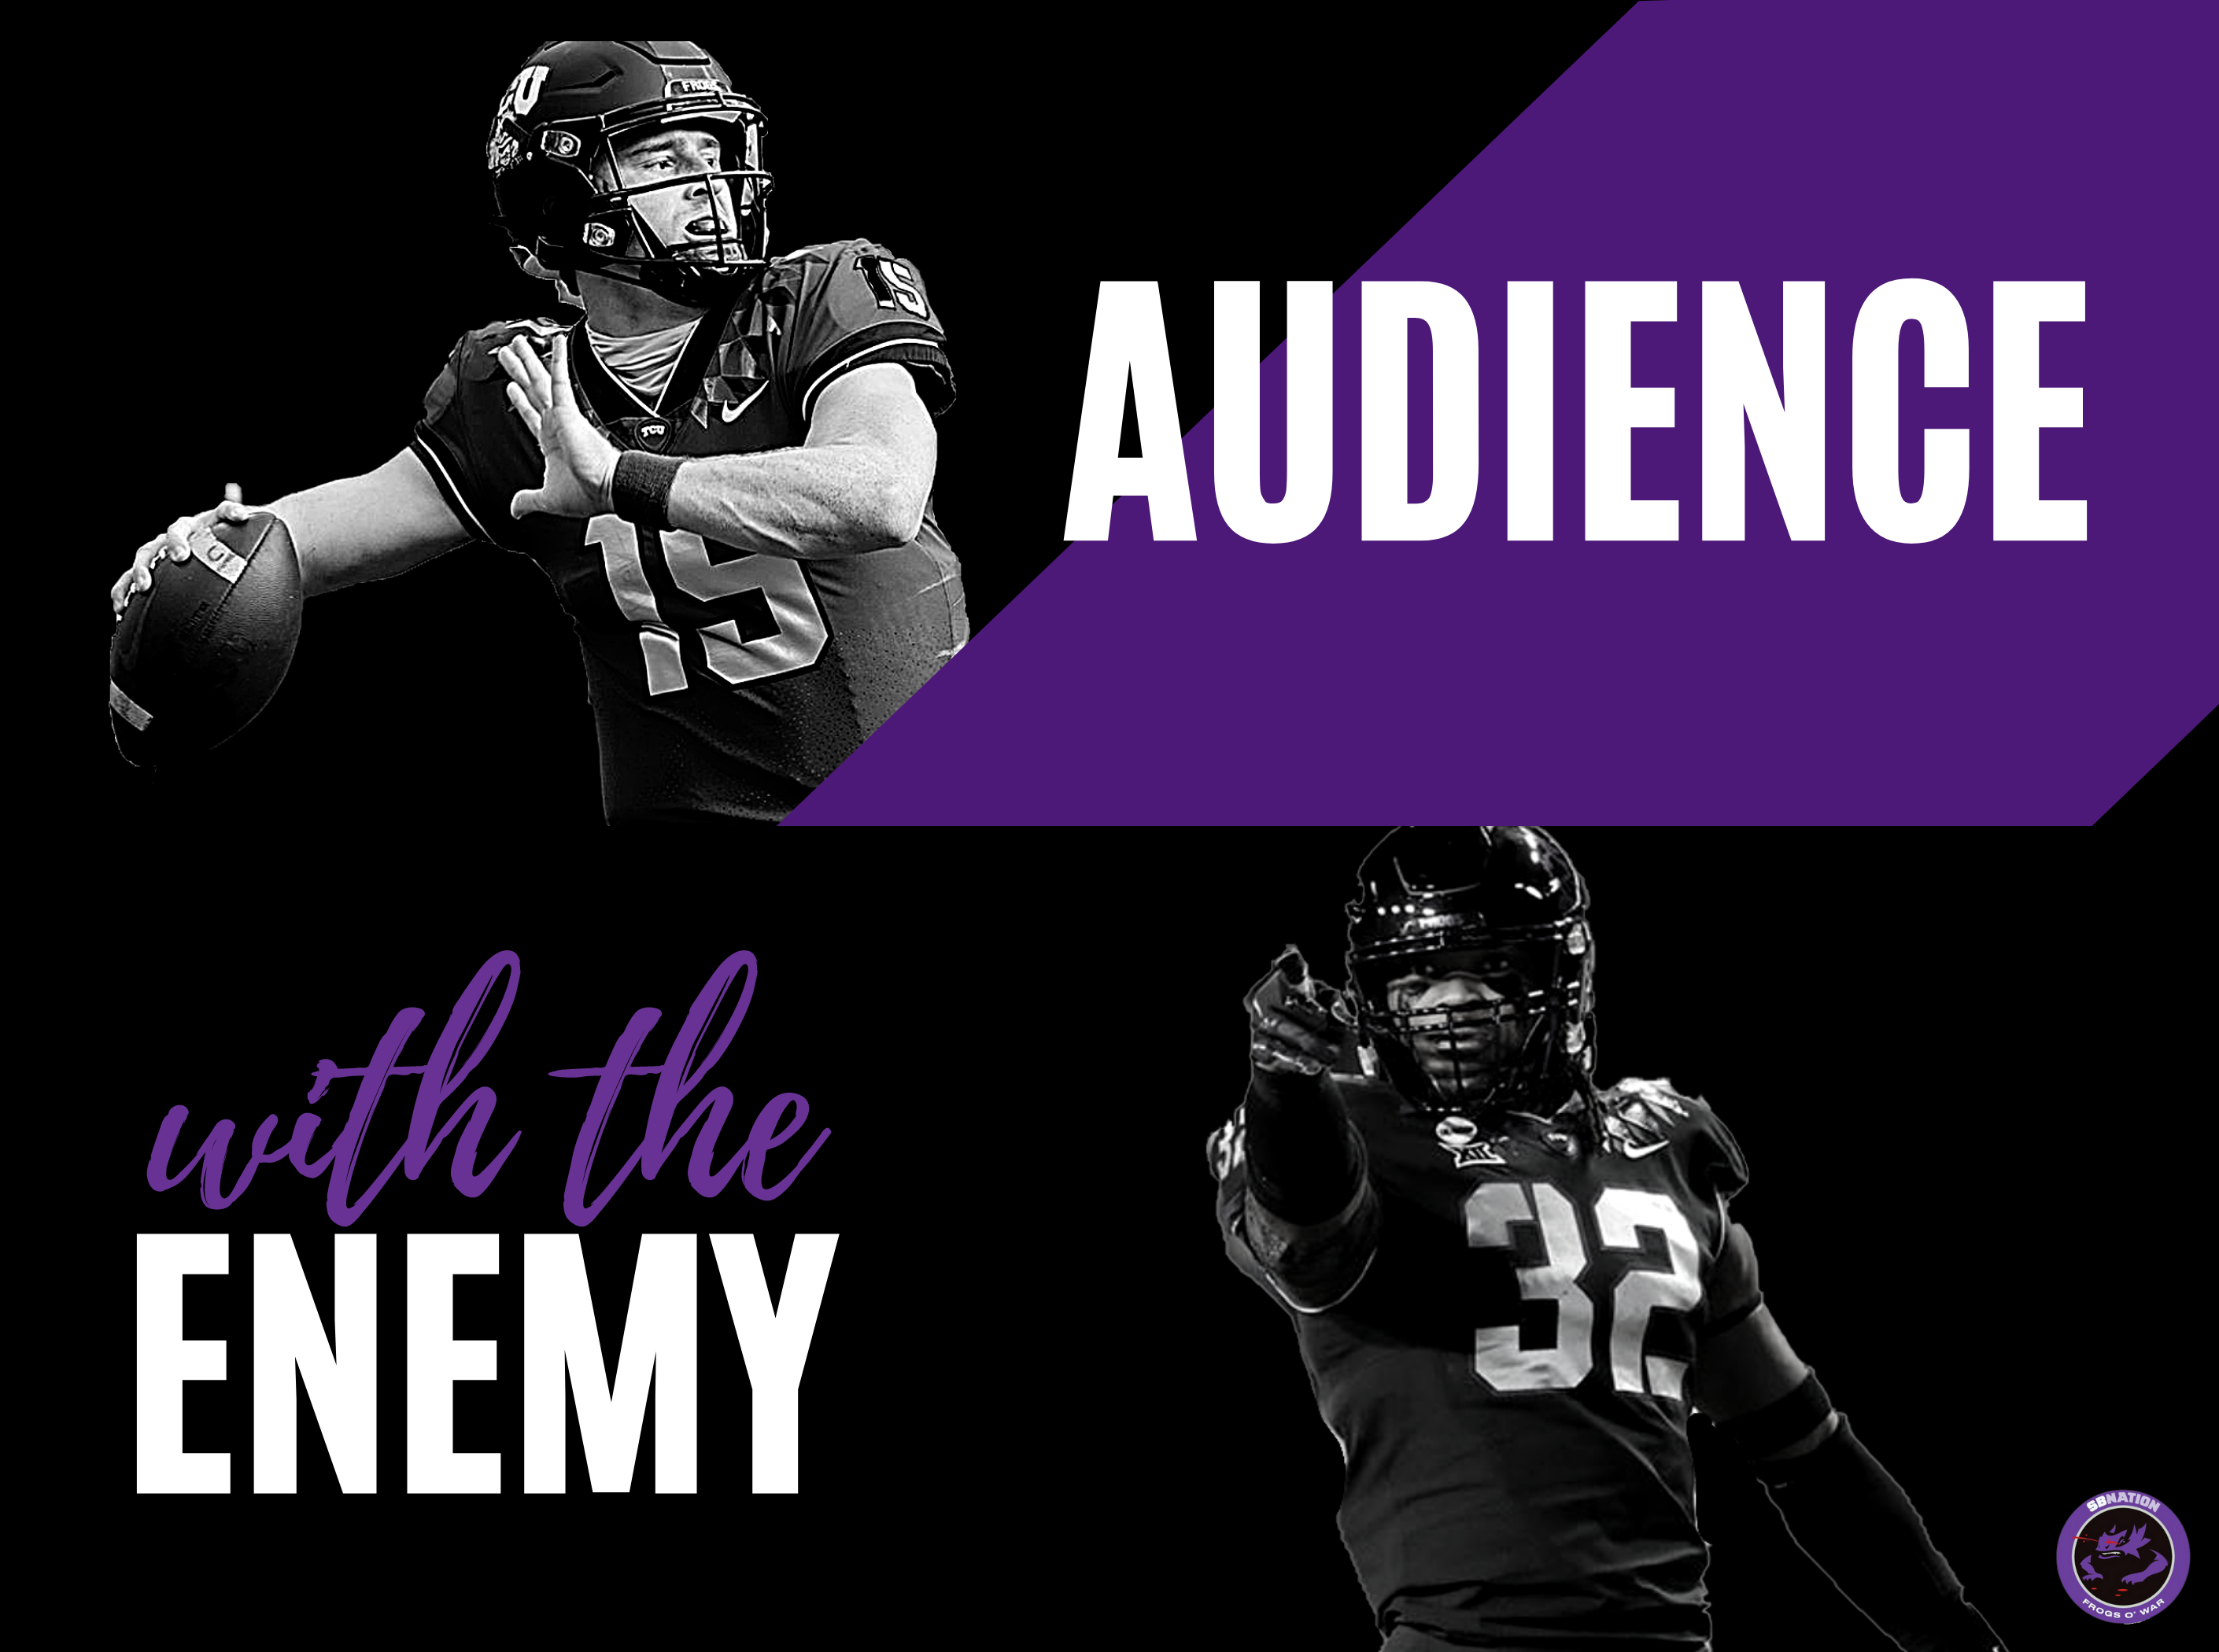 Audience with the Enemy